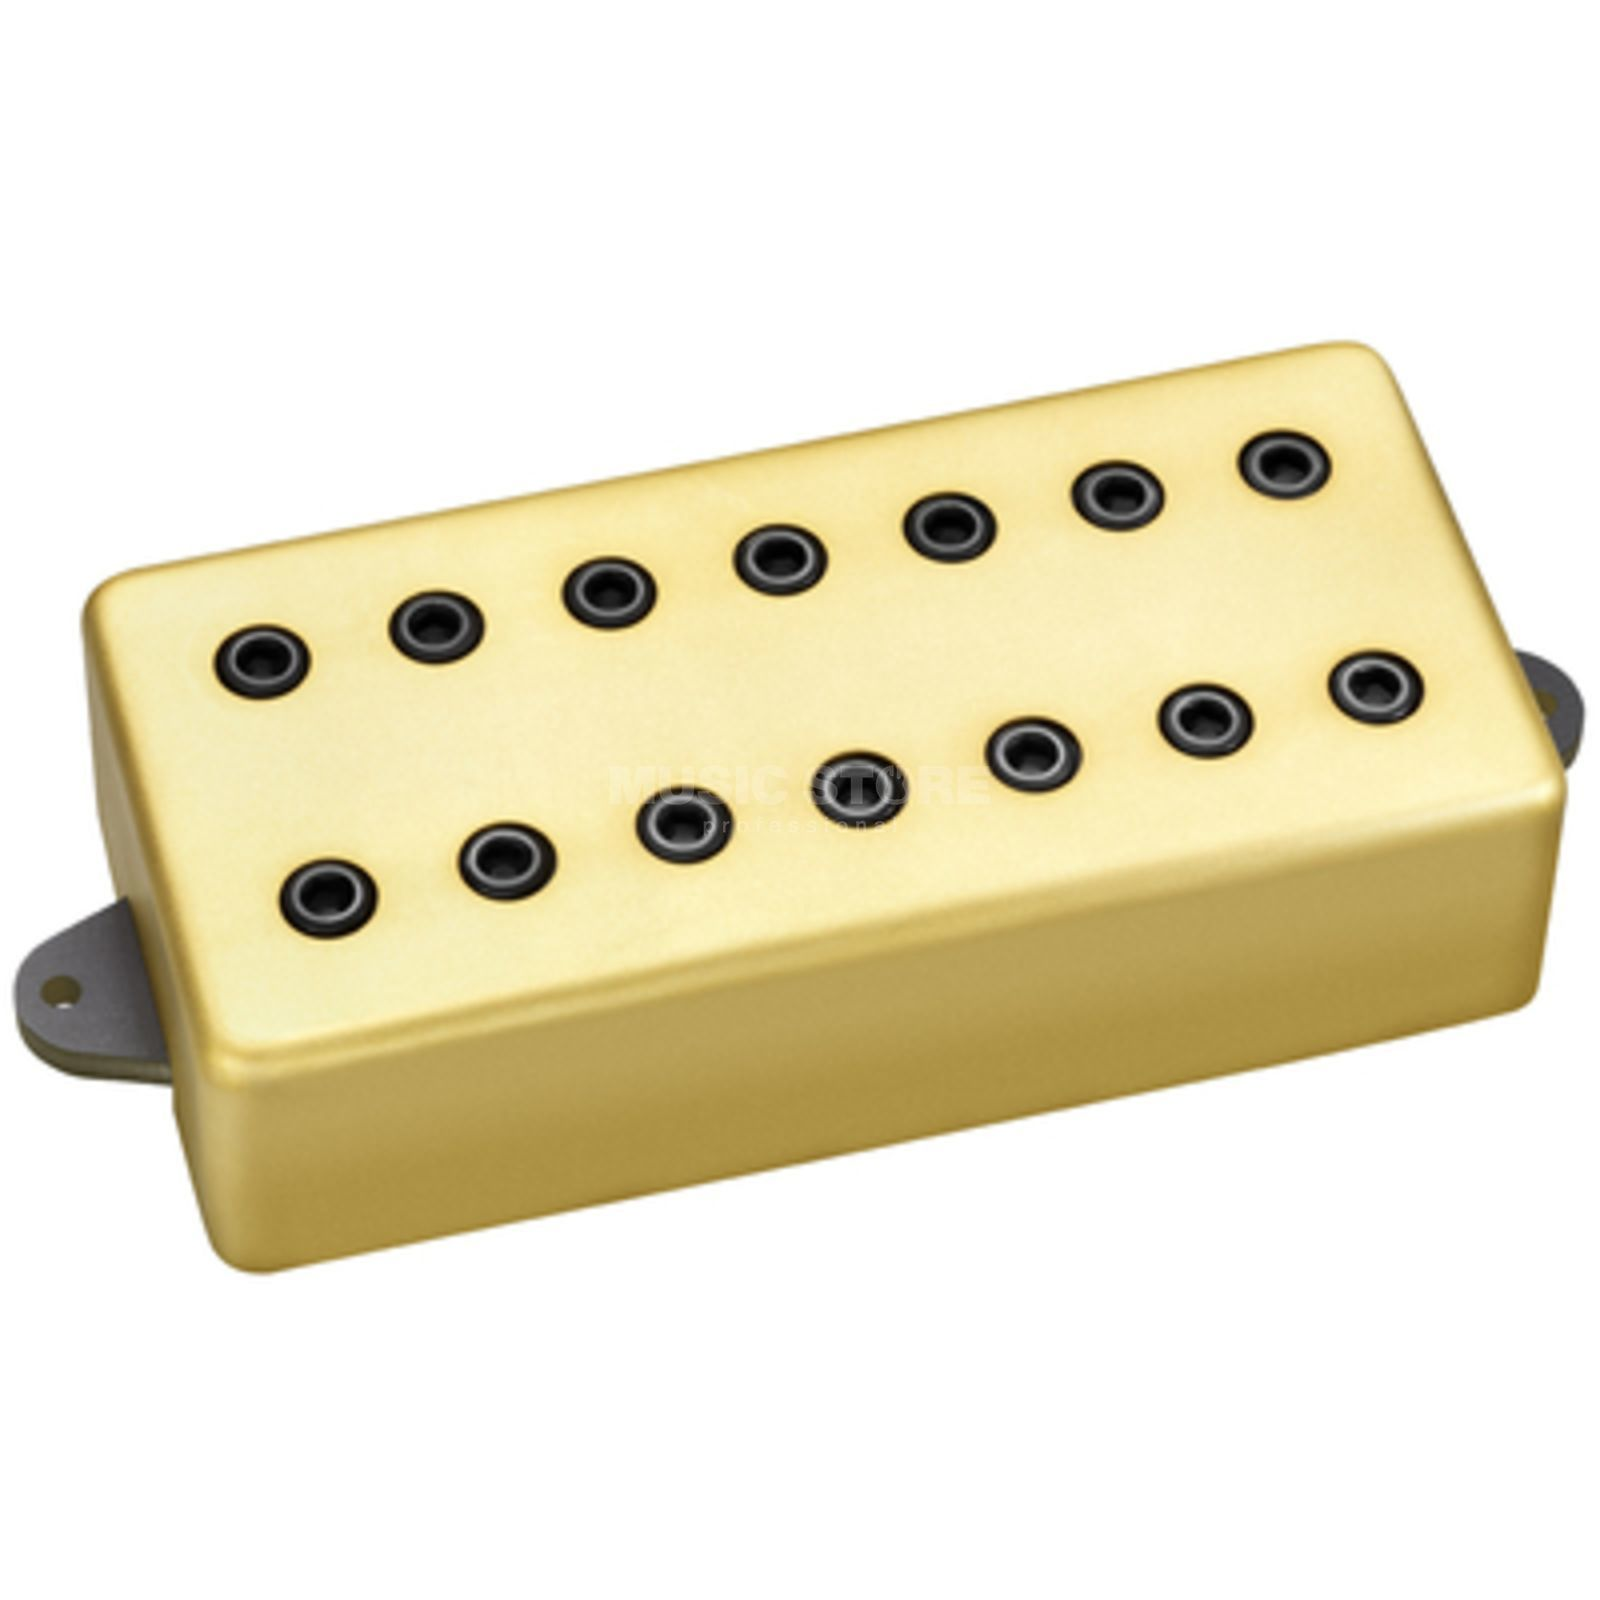 DiMarzio DP714 Titan 7 Bridge Product Image